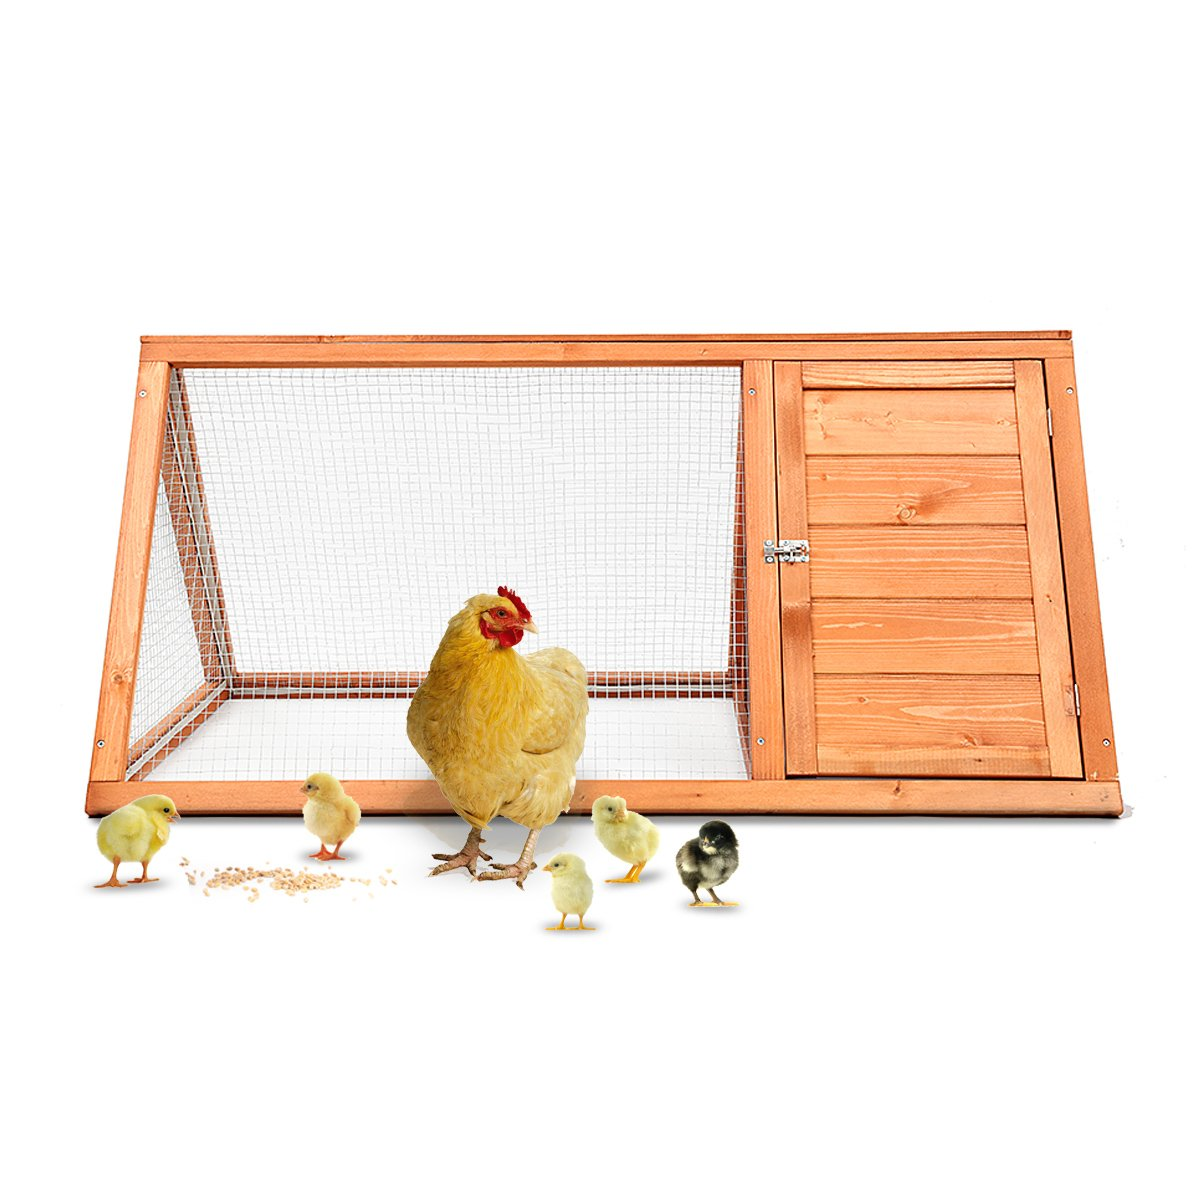 Magshion Wooden Chicken Coop Rabbit Hutch Pet Cage Wood Small Animal Poultry Cage Run (HUTCH005)